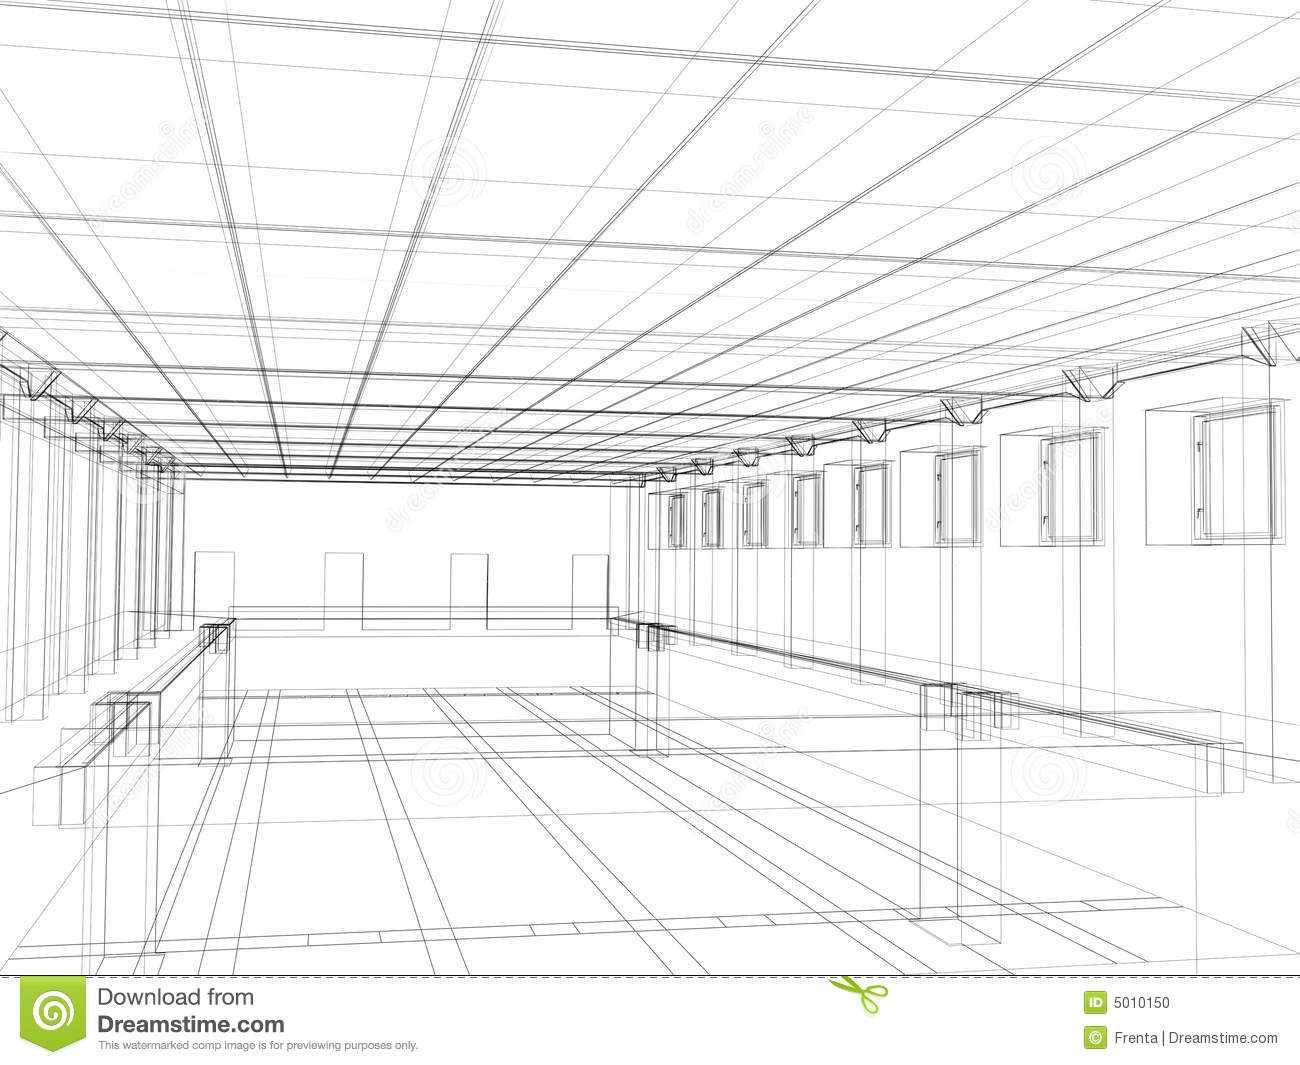 3d sketch of an interior public building stock photo image 5010150 for Construction drawings and details for interiors